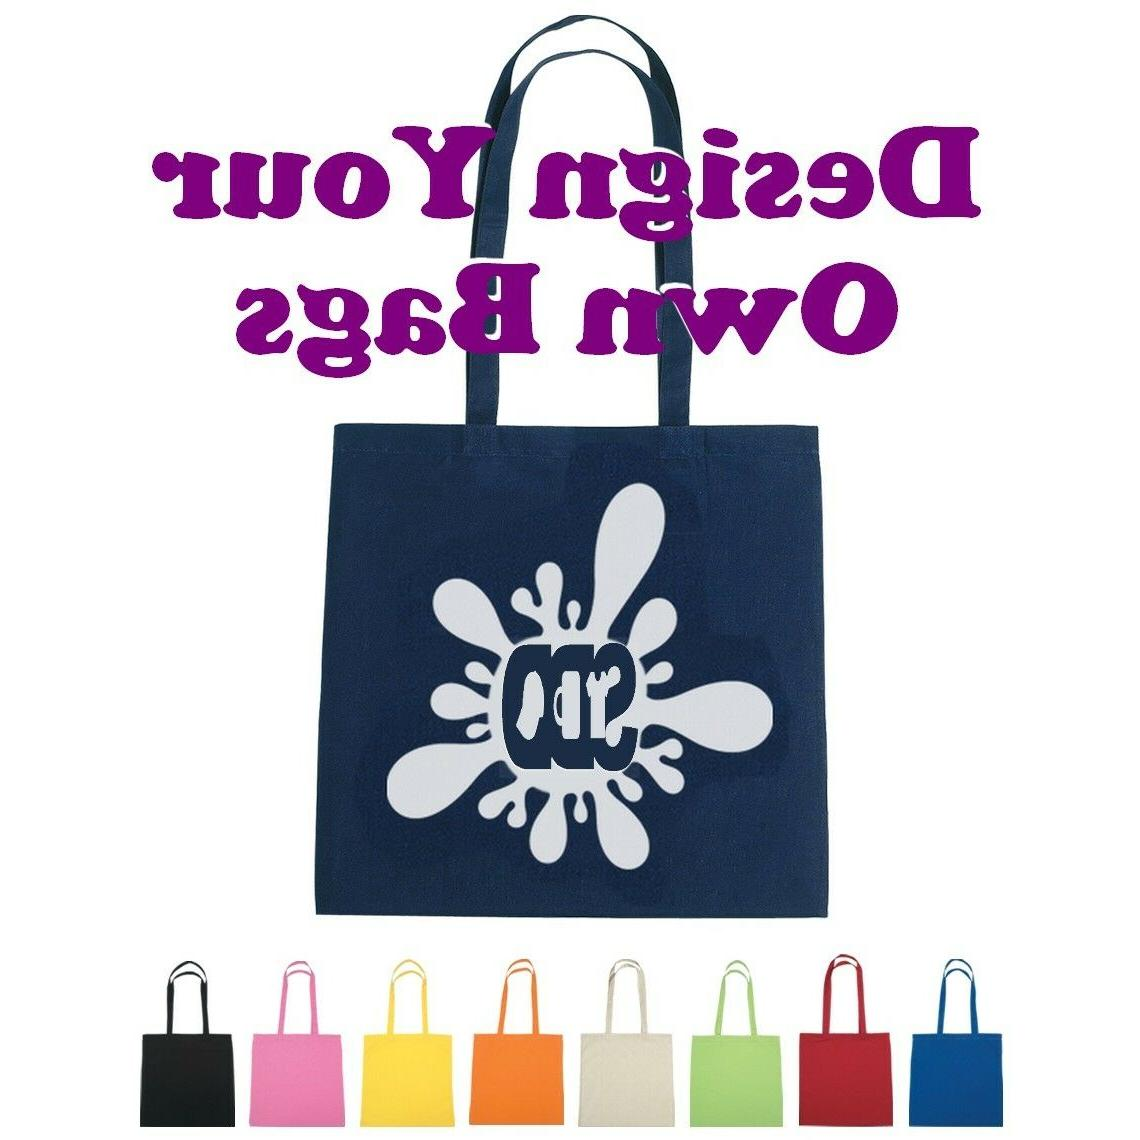 Personalized Tote Bag. Free Shipping! Design It Your Way!